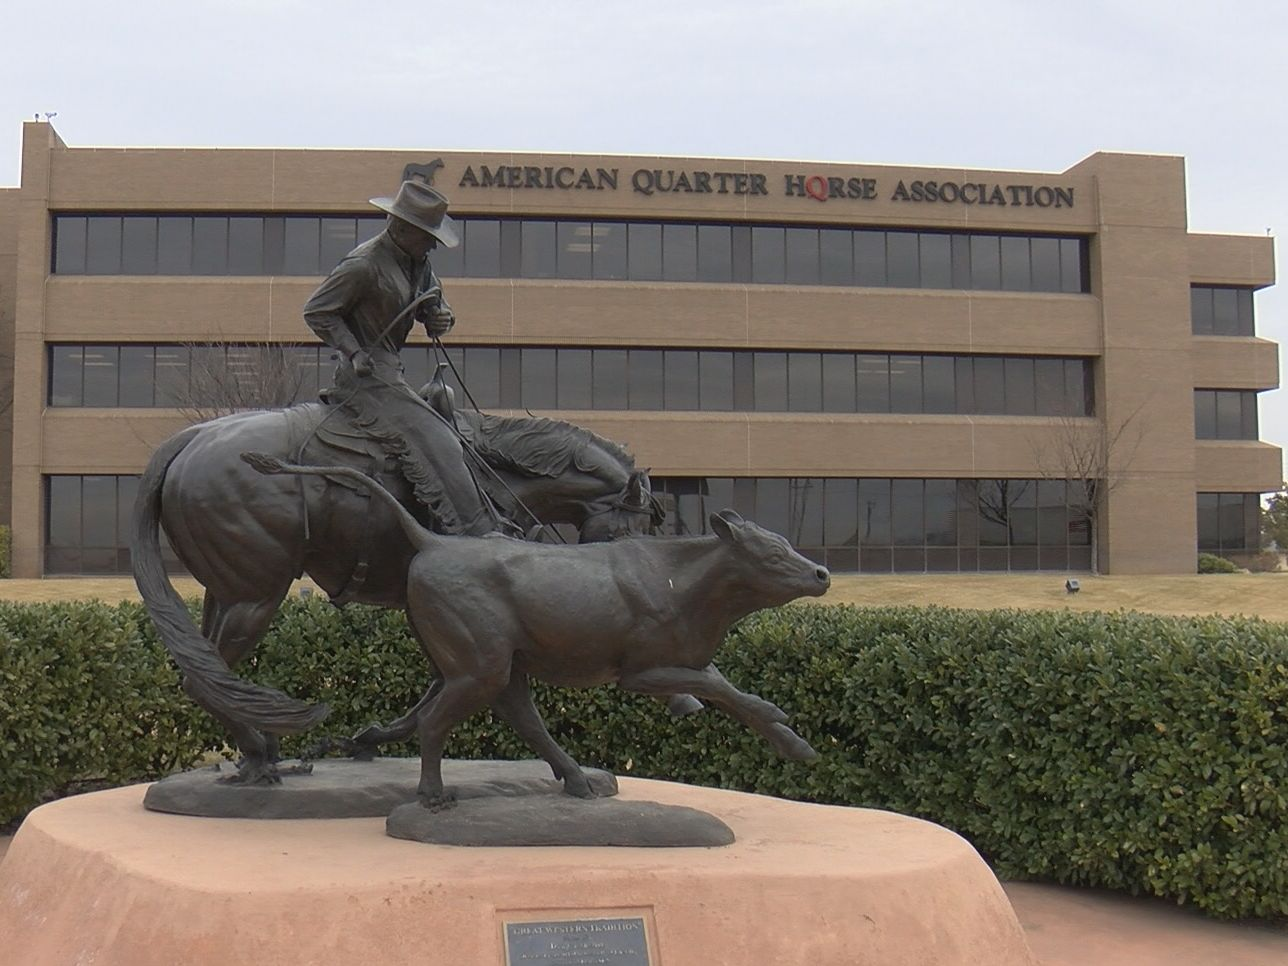 Community members concerned about impact of possible AQHA move